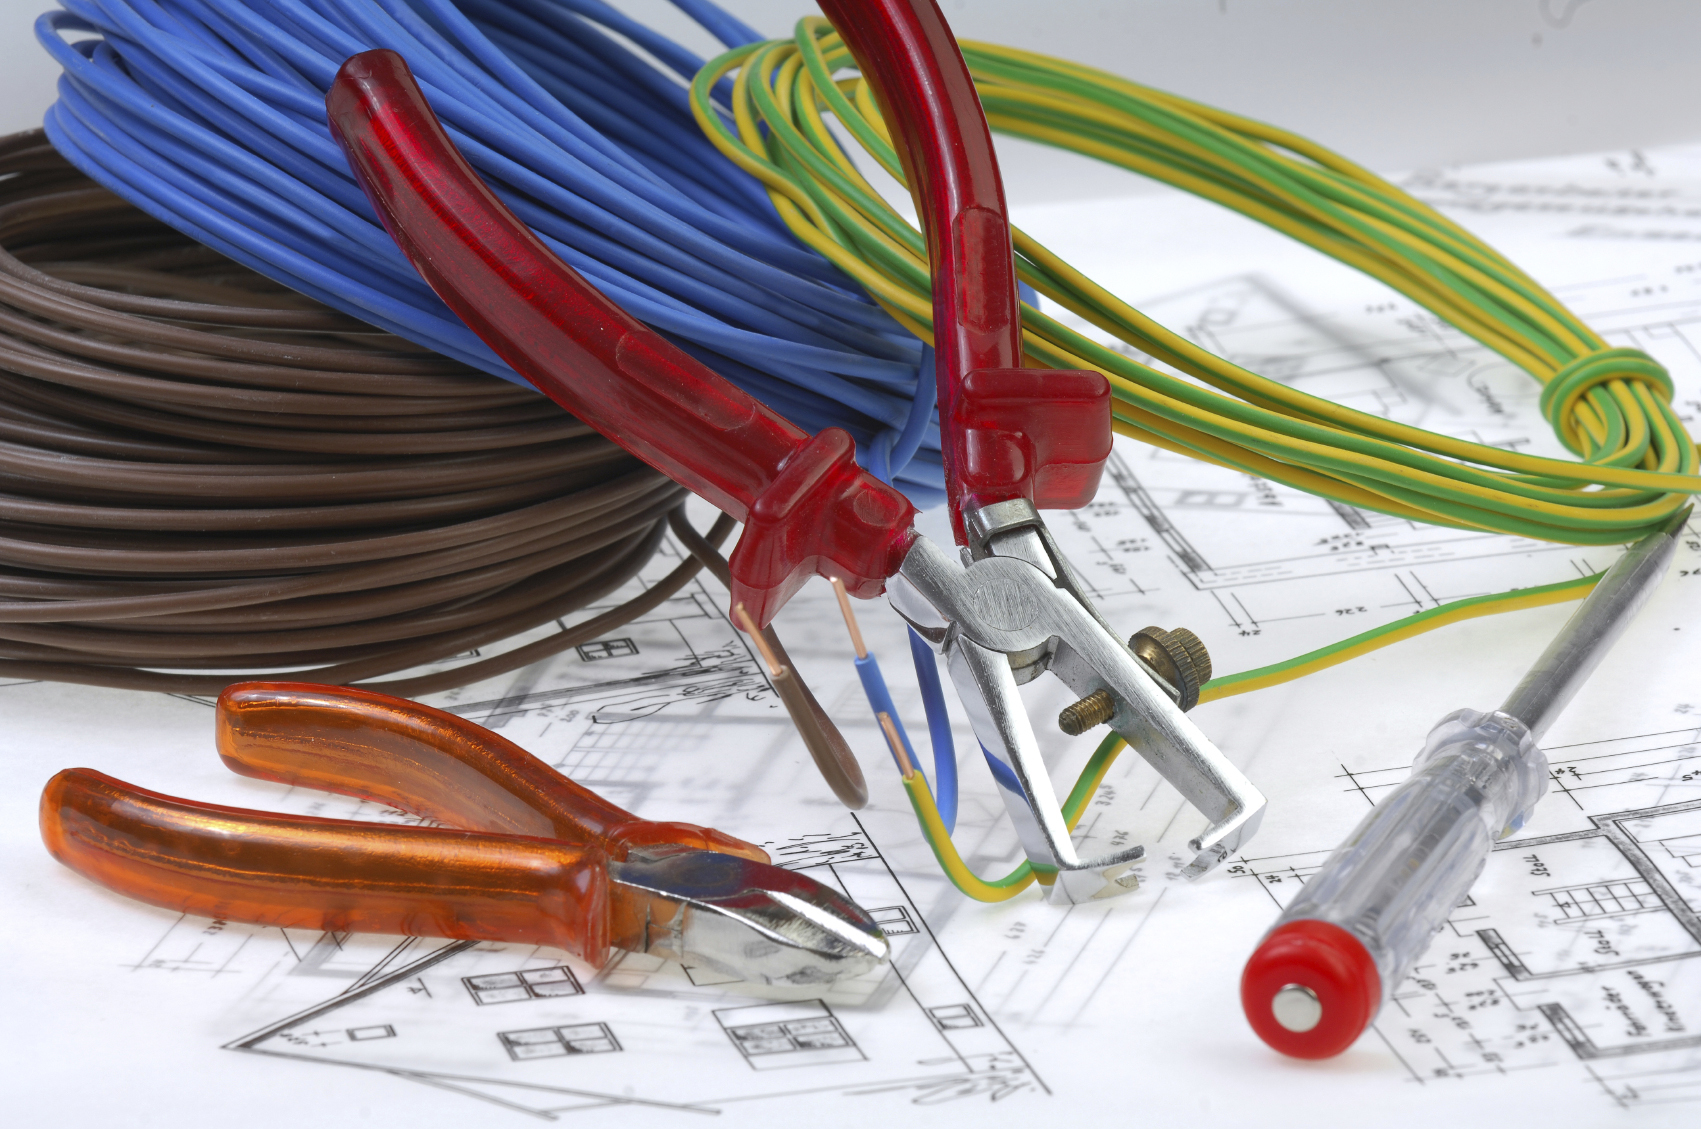 welcome to adw electrical services providing professional rh adw electrical services co uk Plug Electrical Supplies Residential Electrical Supplies Wholesale